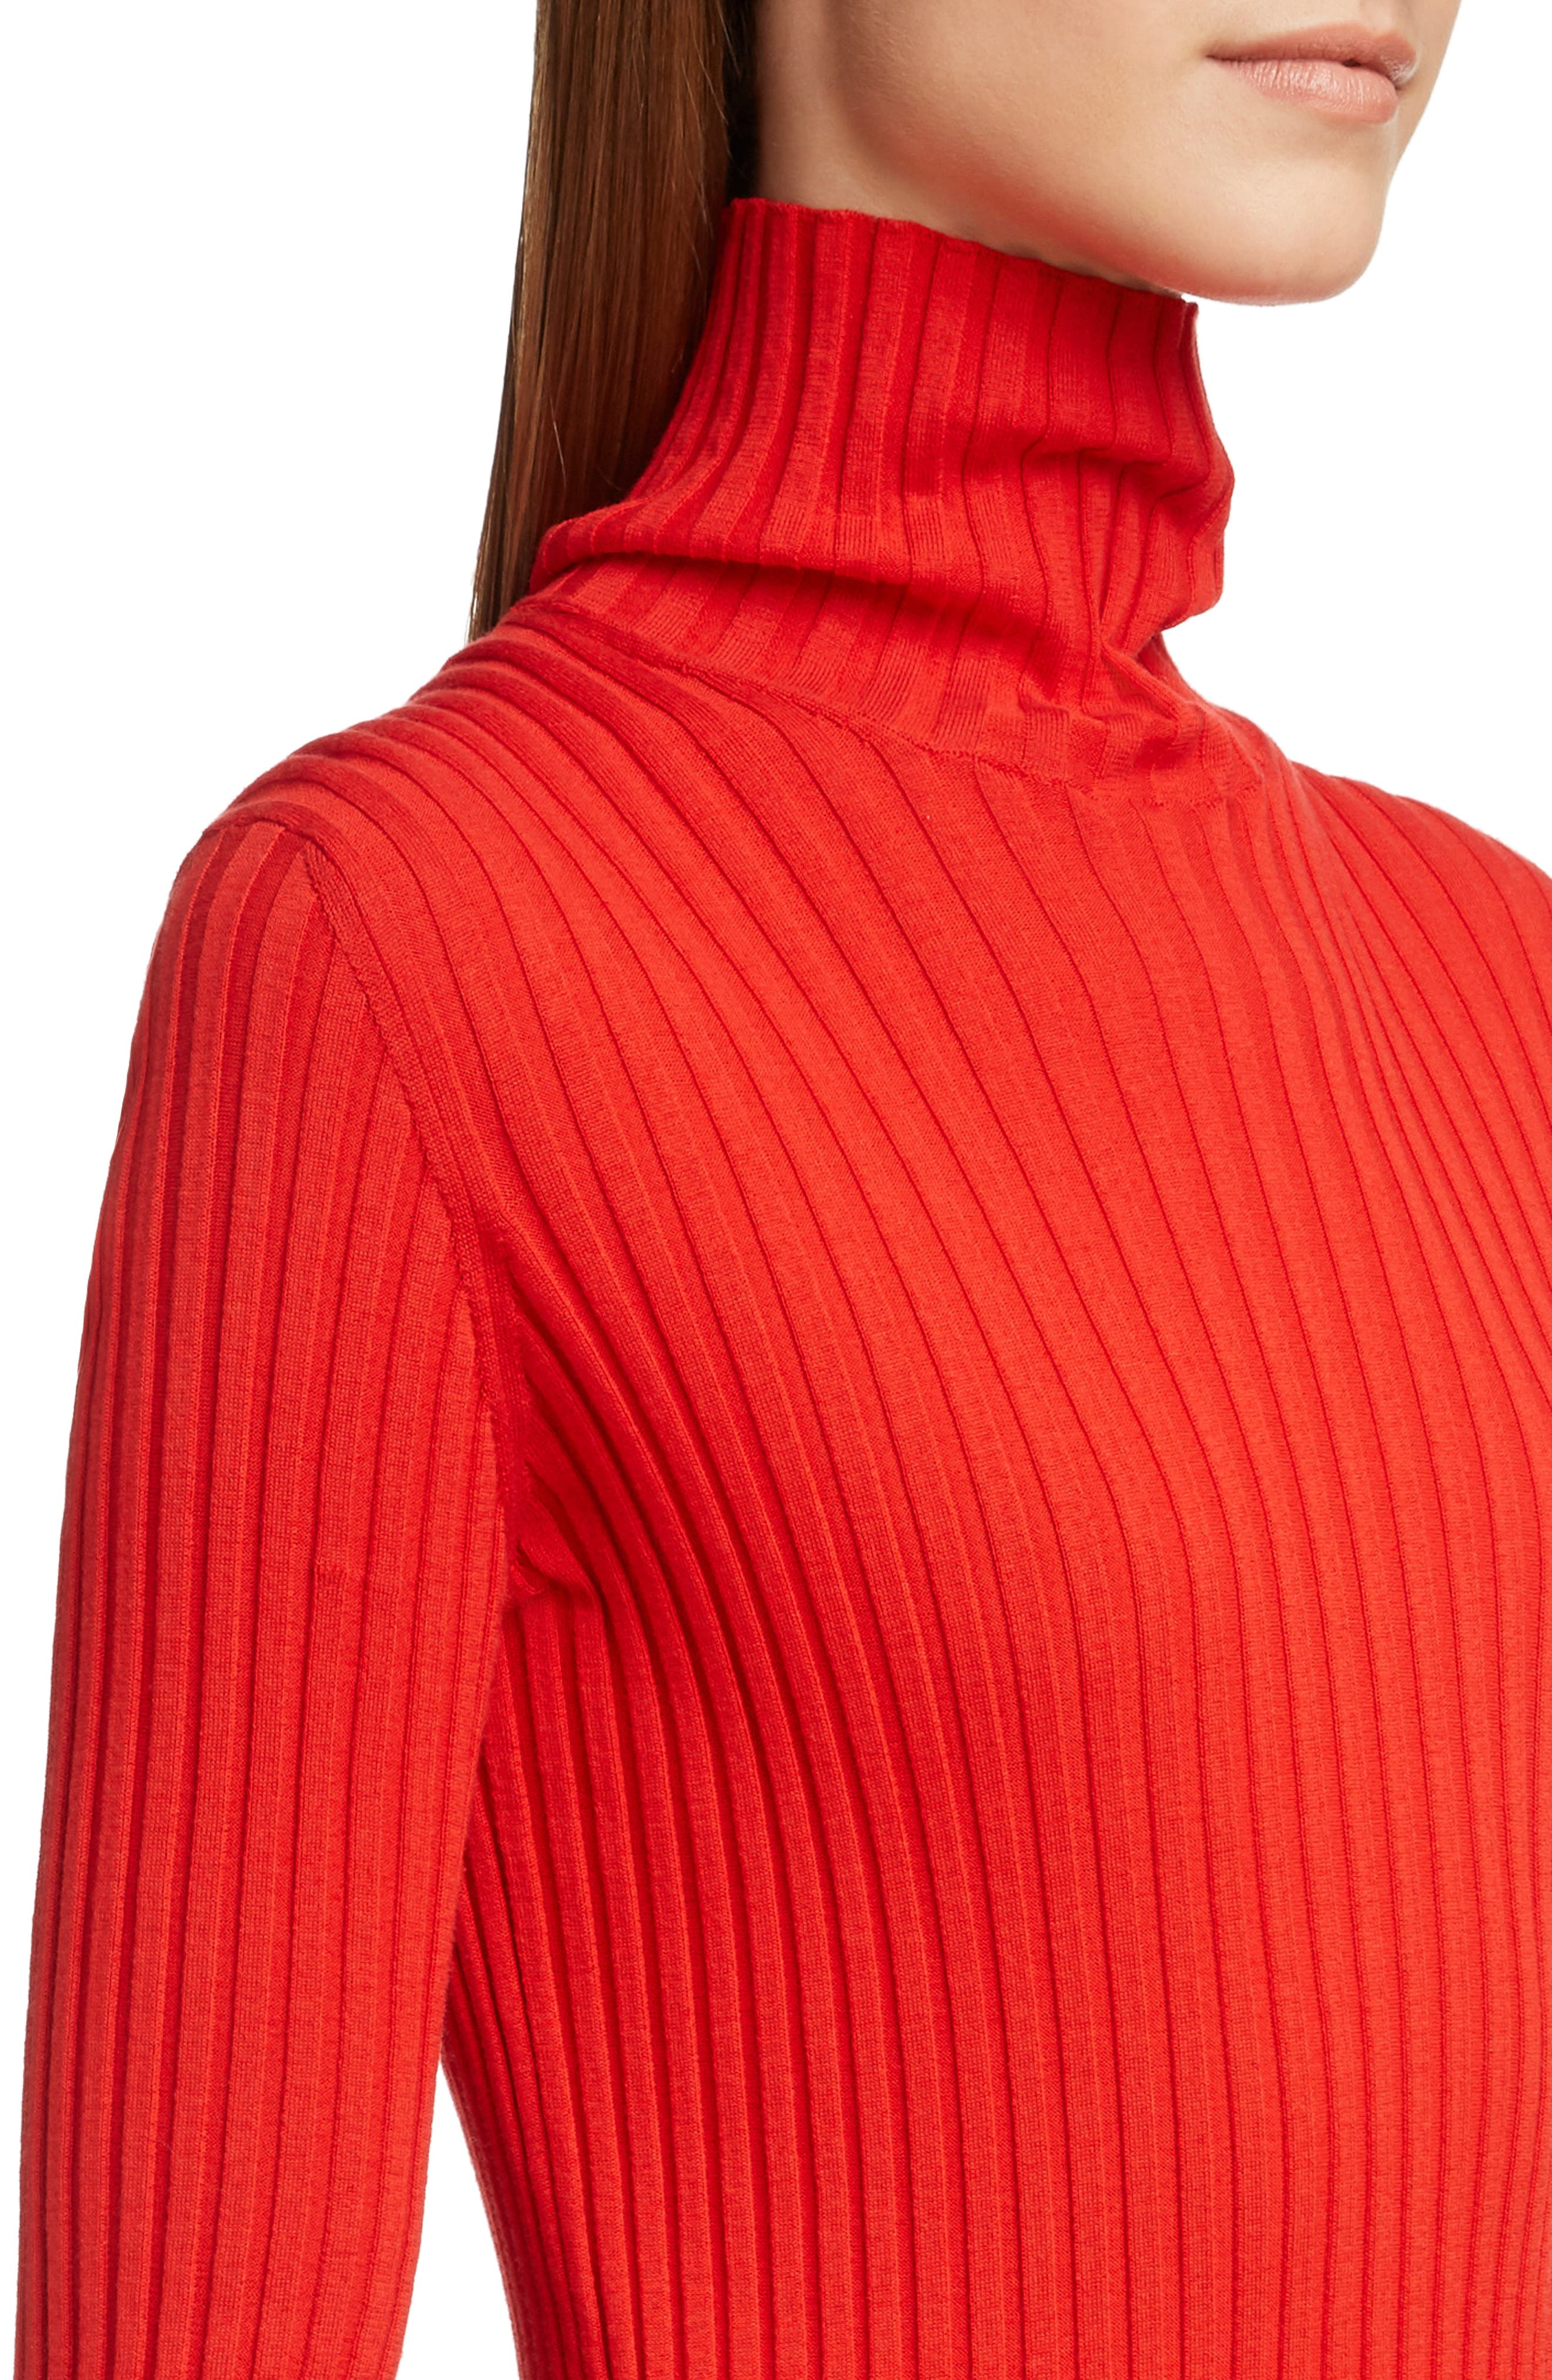 VICTORIA BECKHAM, Gathered Sleeve Rib Knit Turtleneck Sweater, Alternate thumbnail 4, color, BRIGHT RED